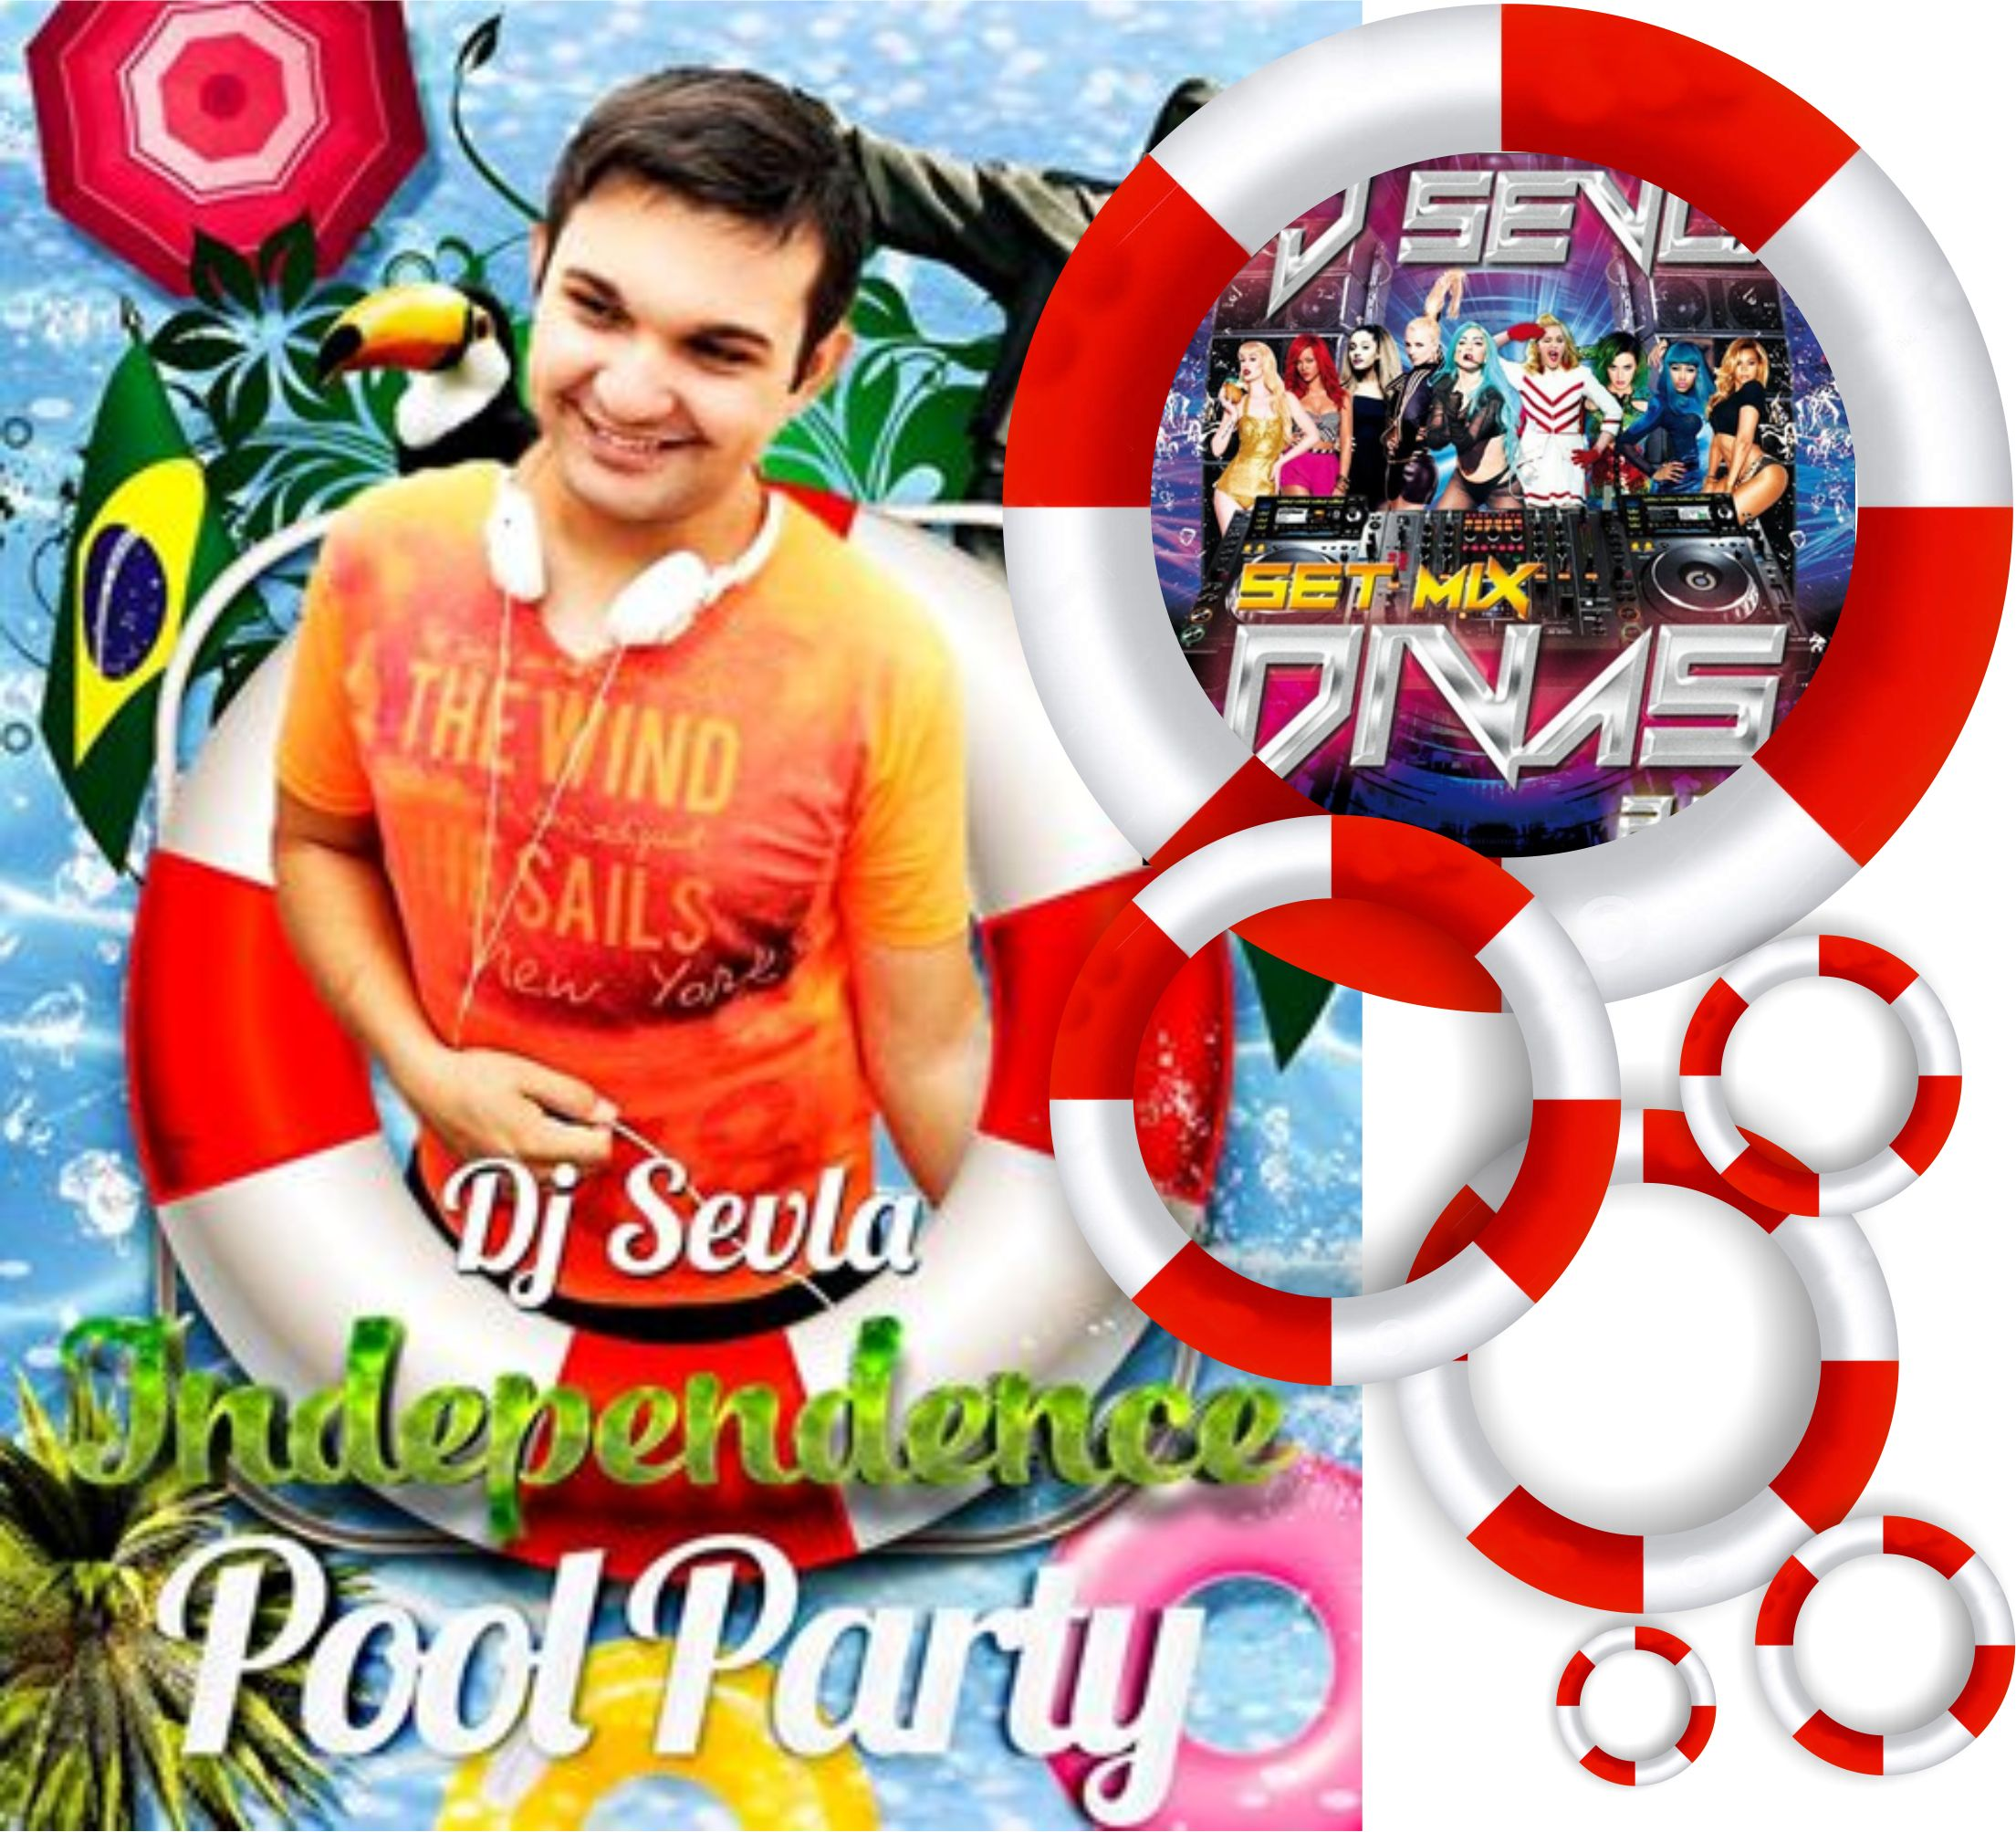 Calor ferve o e muita dance music na independence pool for Tribal house music 2015